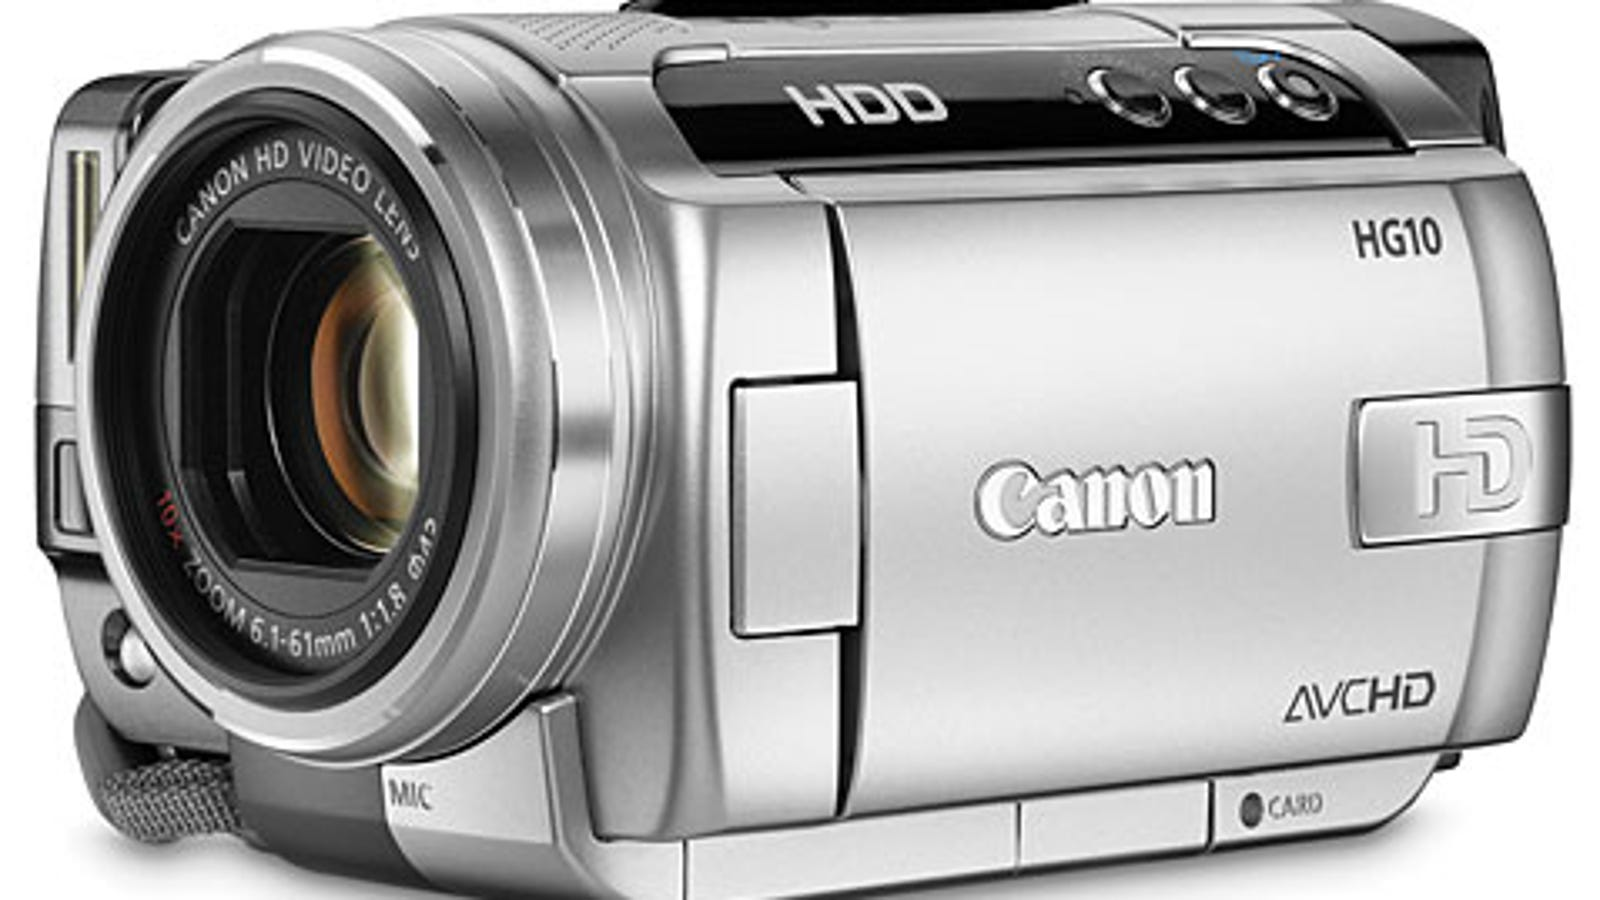 CANON HDD HG10 DRIVERS PC